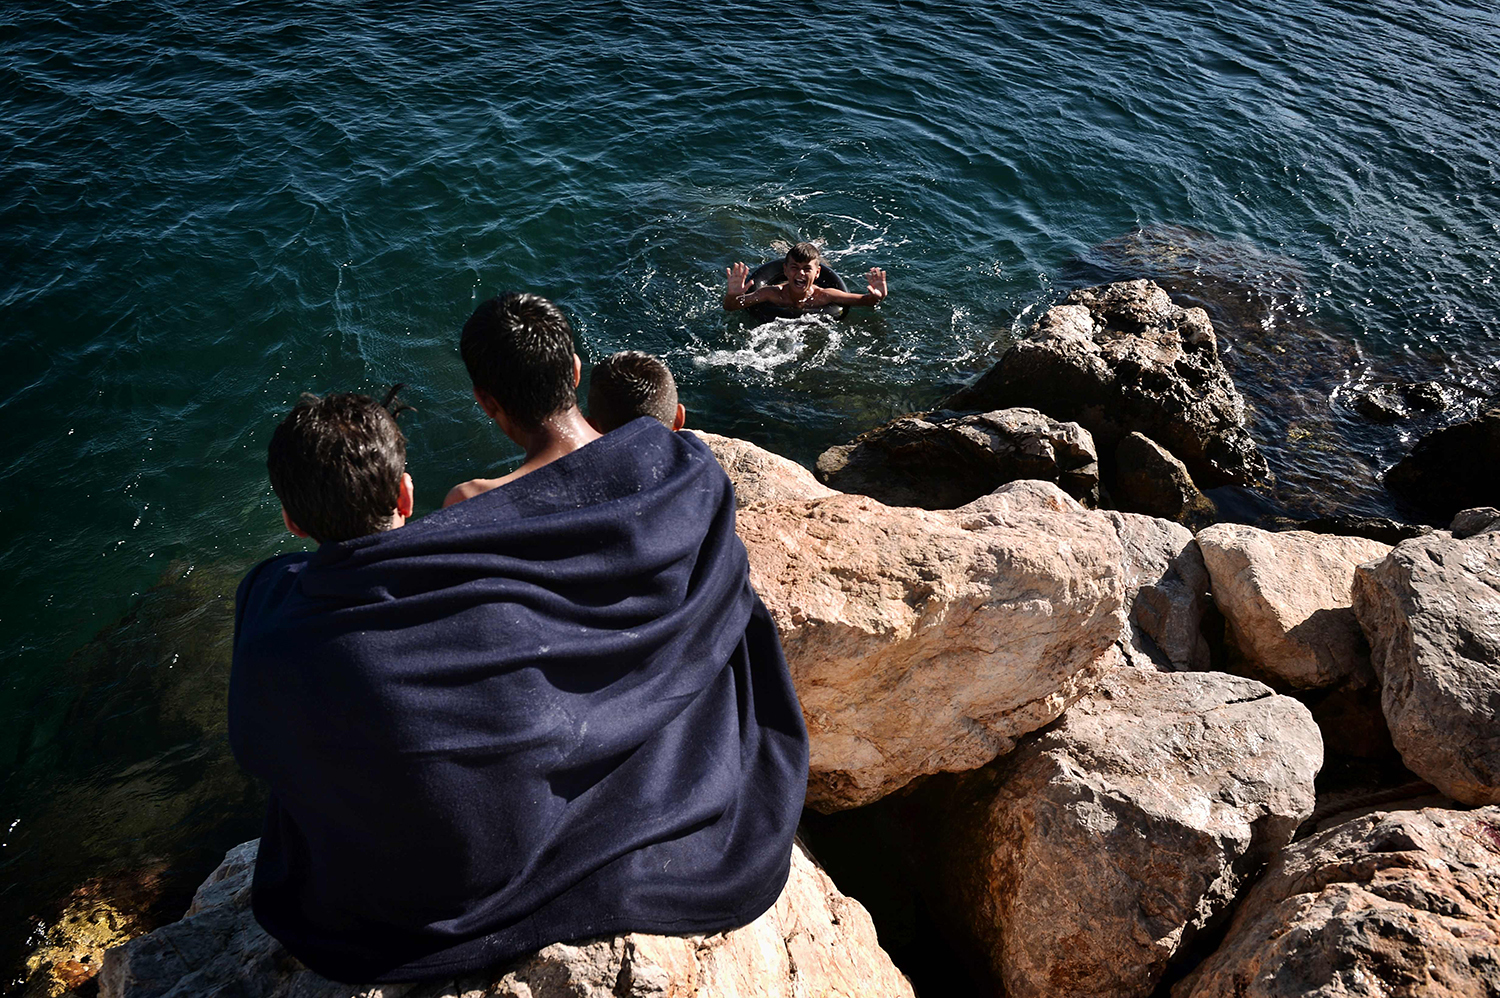 TOPSHOT - Refugee families swim in the sea by the Souda municipality-run refugee camp on the island of Chios on October 13, 2016. Greece is accommodating over 60,000 refugees and migrants stuck in the country after a succession of Balkan and EU states shut their borders earlier this year. / AFP PHOTO / LOUISA GOULIAMAKI / TT / kod 444